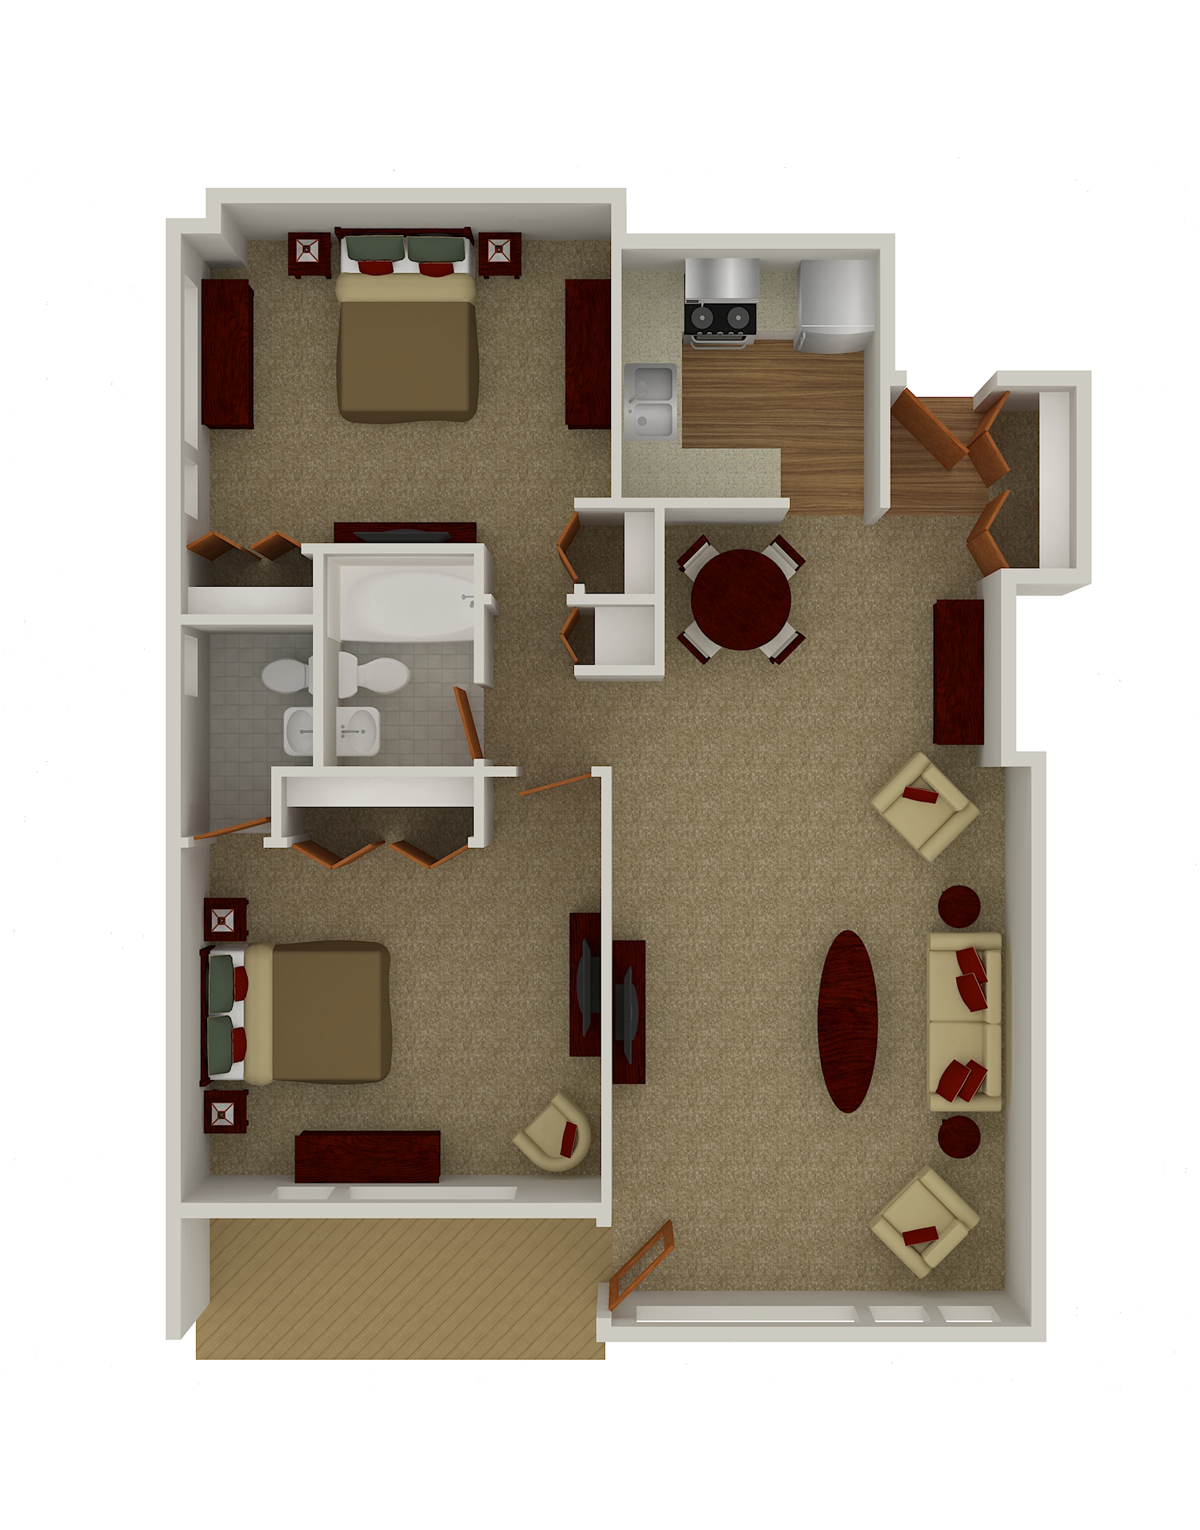 Two Bedroom, 1.5 Bath